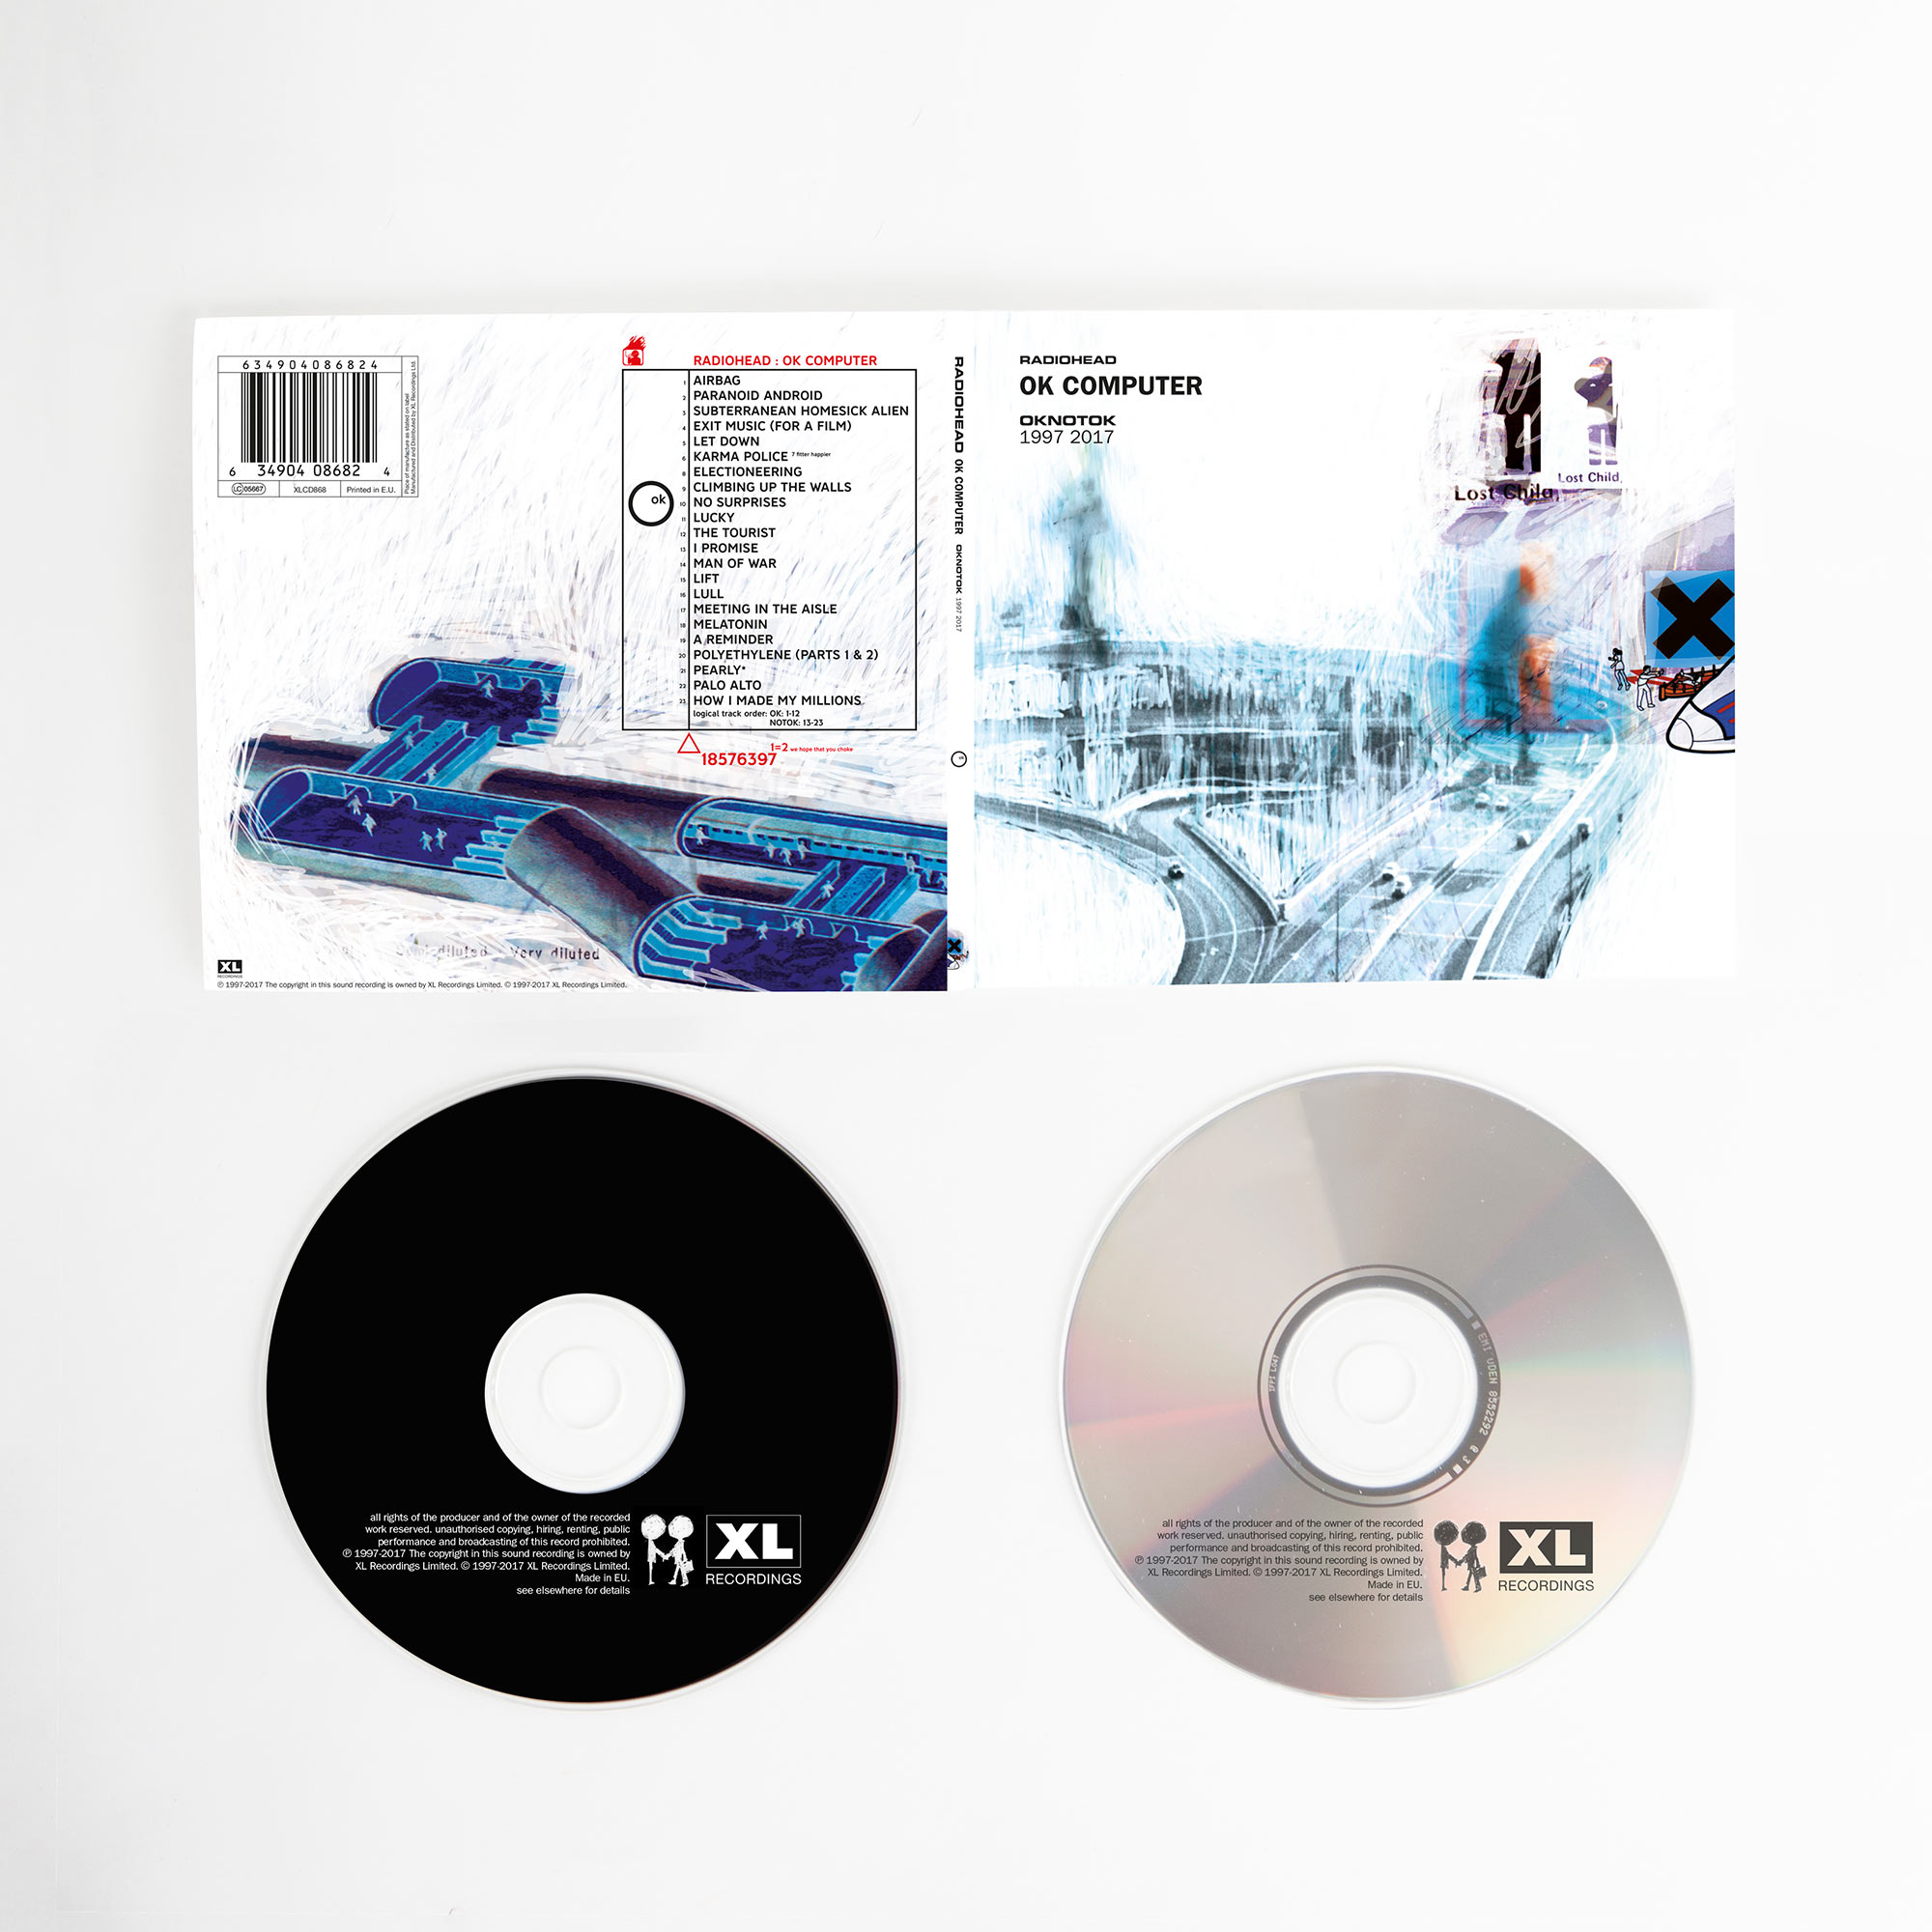 Disc 1: 01 AIRBAG 02 PARANOID ANDROID 03 SUBTERRANEAN HOMESICK ALIEN 04 EXIT MUSIC (FOR A FILM) 05 LET DOWN 06 KARMA POLICE 07 fitter happier 08 ELECTIONEERING 09 CLIMBING UP THE WALLS 10 NO SURPRISES 11 LUCKY 12 THE TOURIST  Disc 2: 01 I PROMISE 02 MAN OF WAR 03 LIFT 04 LULL 05 MEETING IN THE AISLE 06 MELATONIN 07 A REMINDER 08 POLYETHYLENE (PARTS 1 & 2) 09 PEARLY* 10 PALO ALTO 11 HOW I MADE MY MILLIONS